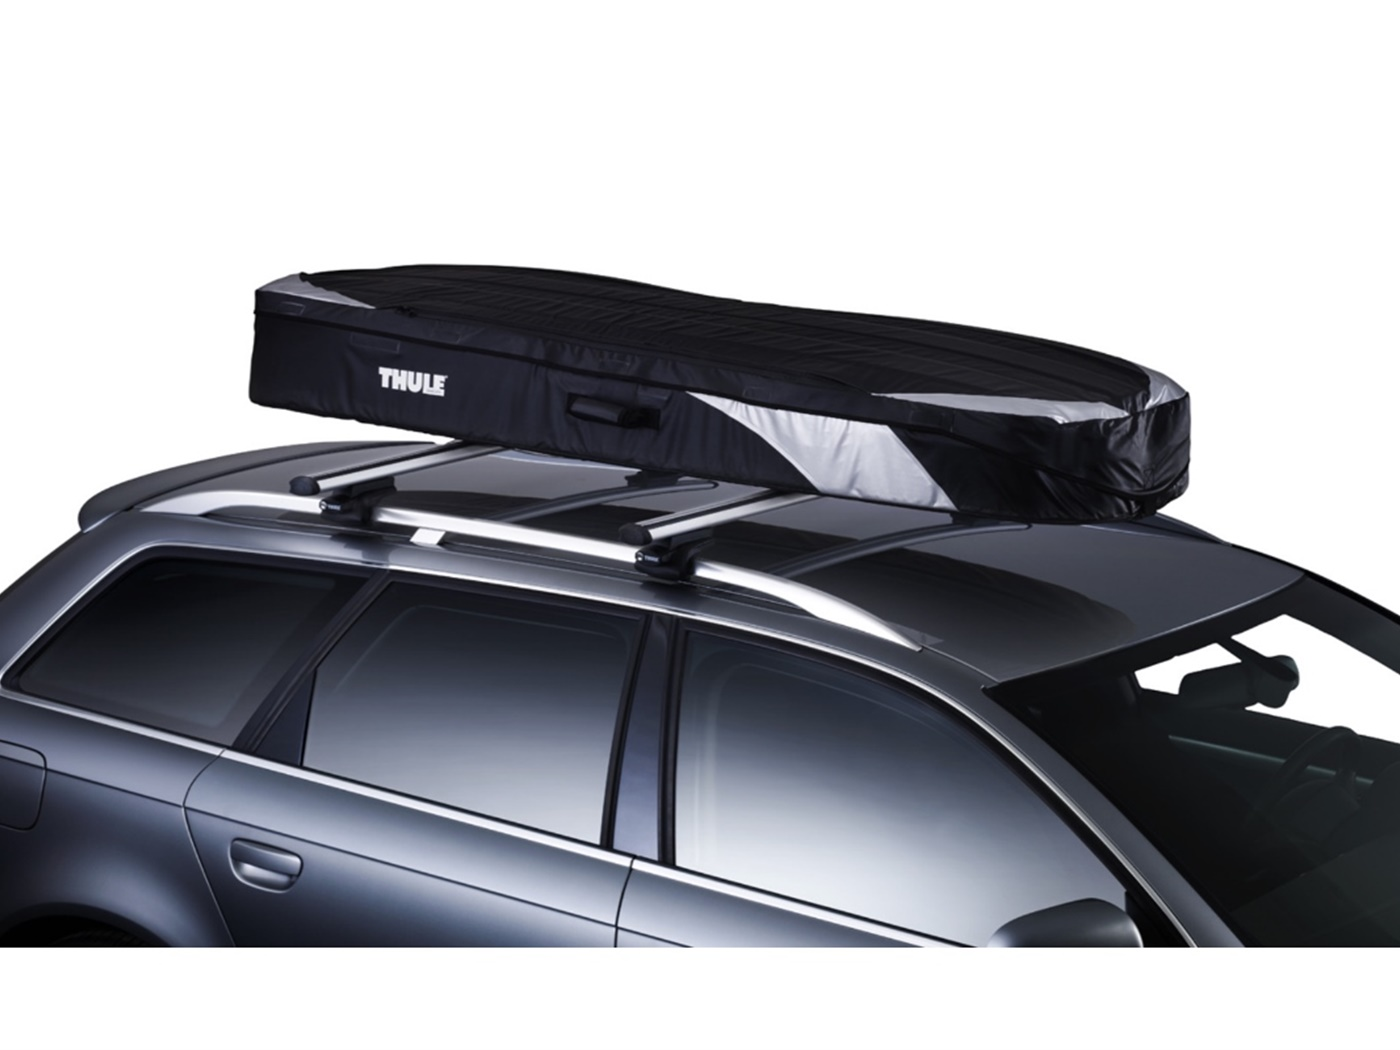 Thule Ranger 500 soft box